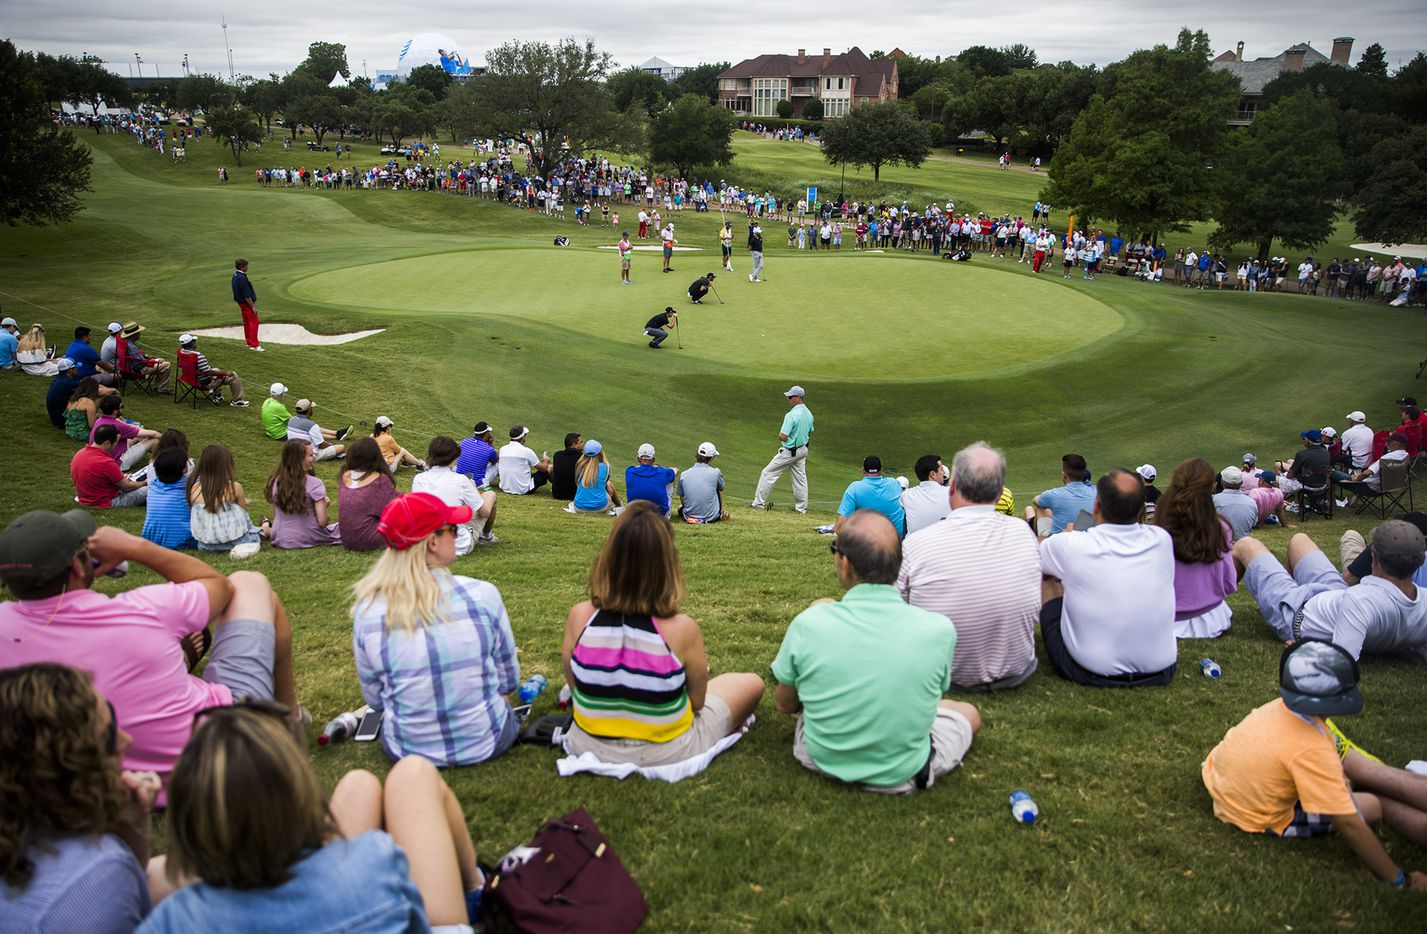 Spectators watch as Dustin Johnson, Cameron Tringale and Bud Cauley line up their putts on the first green during round three of the AT&T Byron Nelson on Saturday, May 20, 2017 at TPC Four Seasons in Irving, Texas.